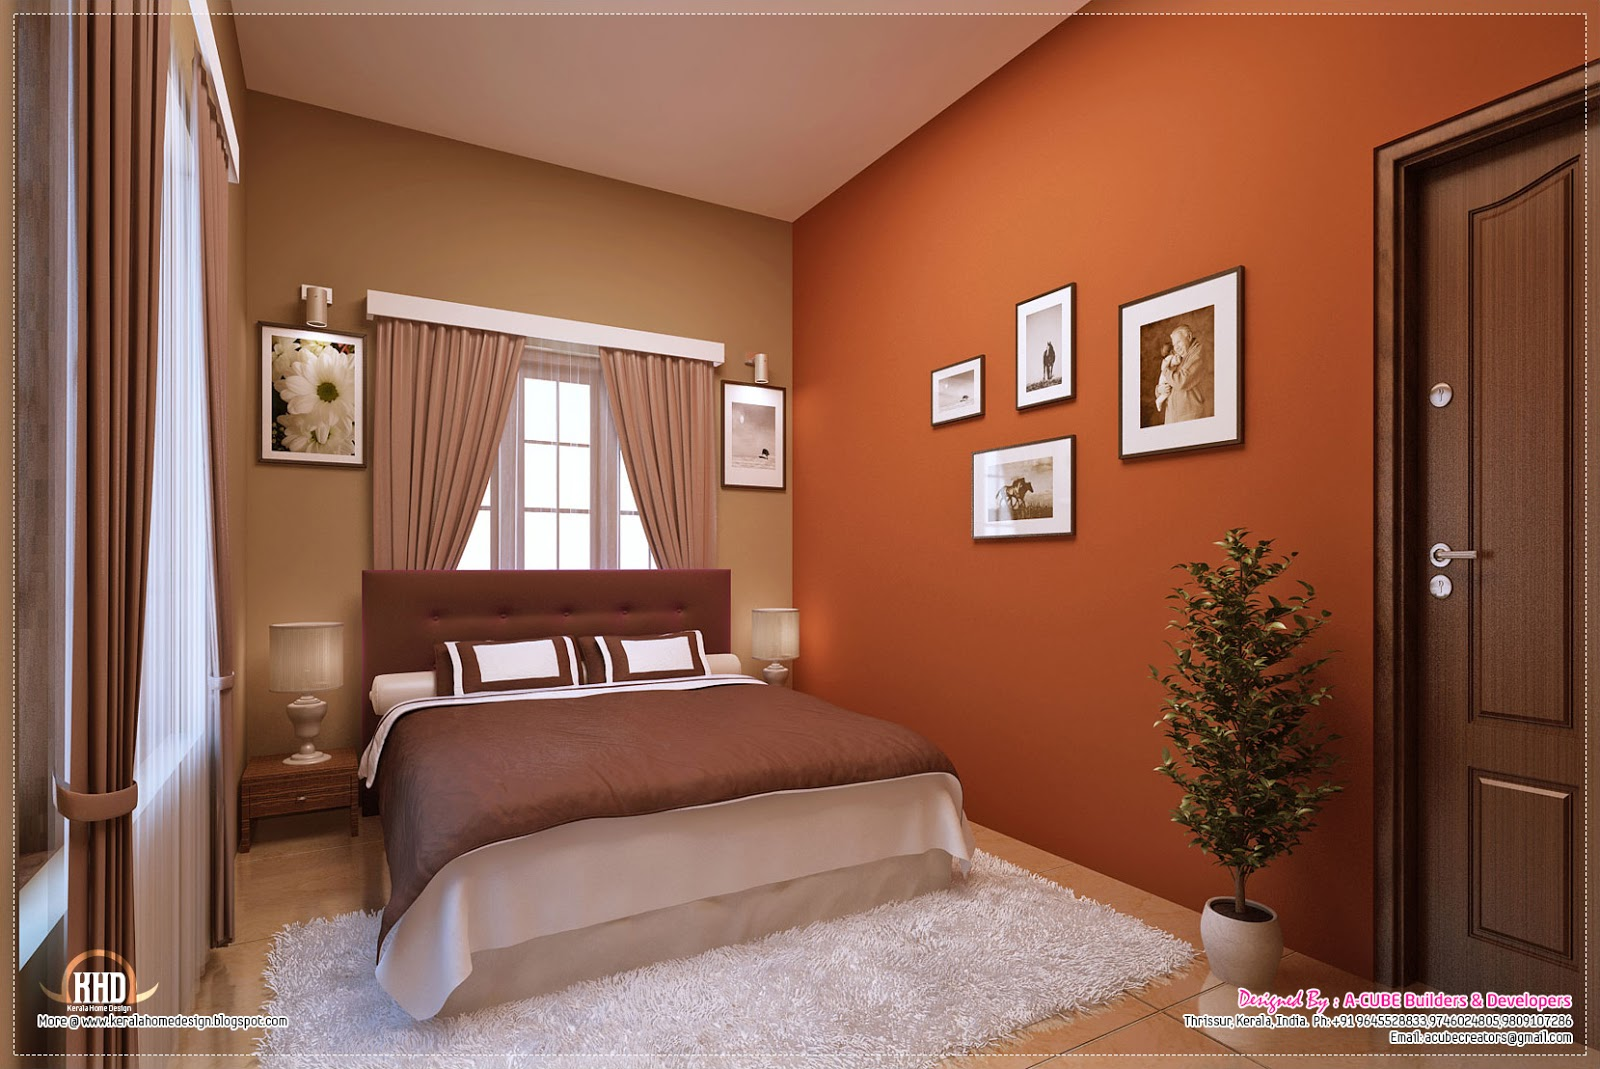 Awesome interior decoration ideas home kerala plans for Beautiful interior designs of houses